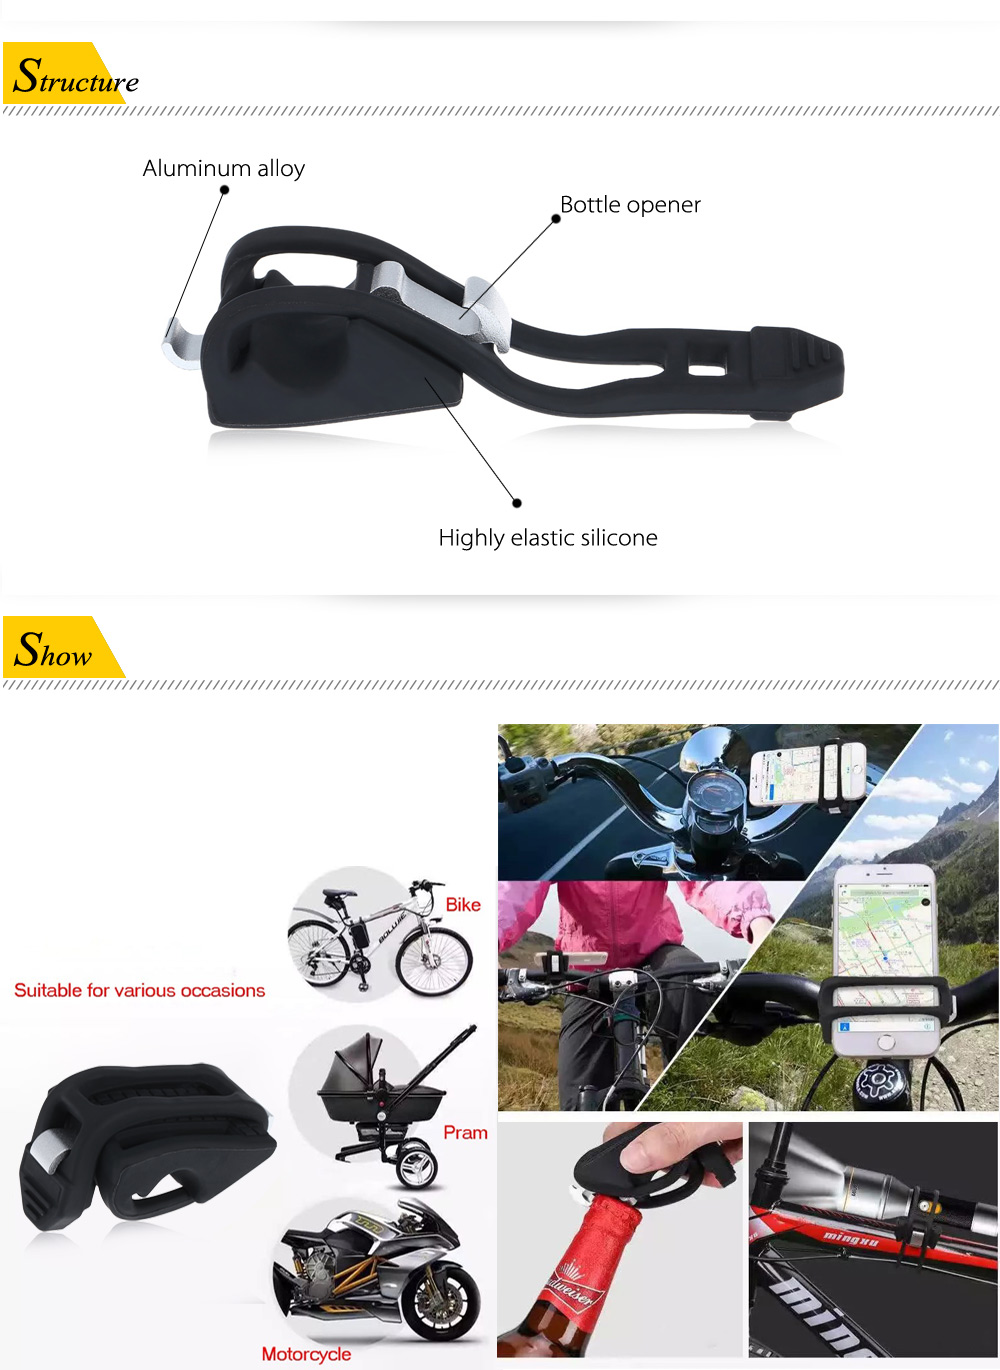 Silicone Bicycle Bike Holder for 4 - 6 inch Mobile Phone with Bottle Opener Function